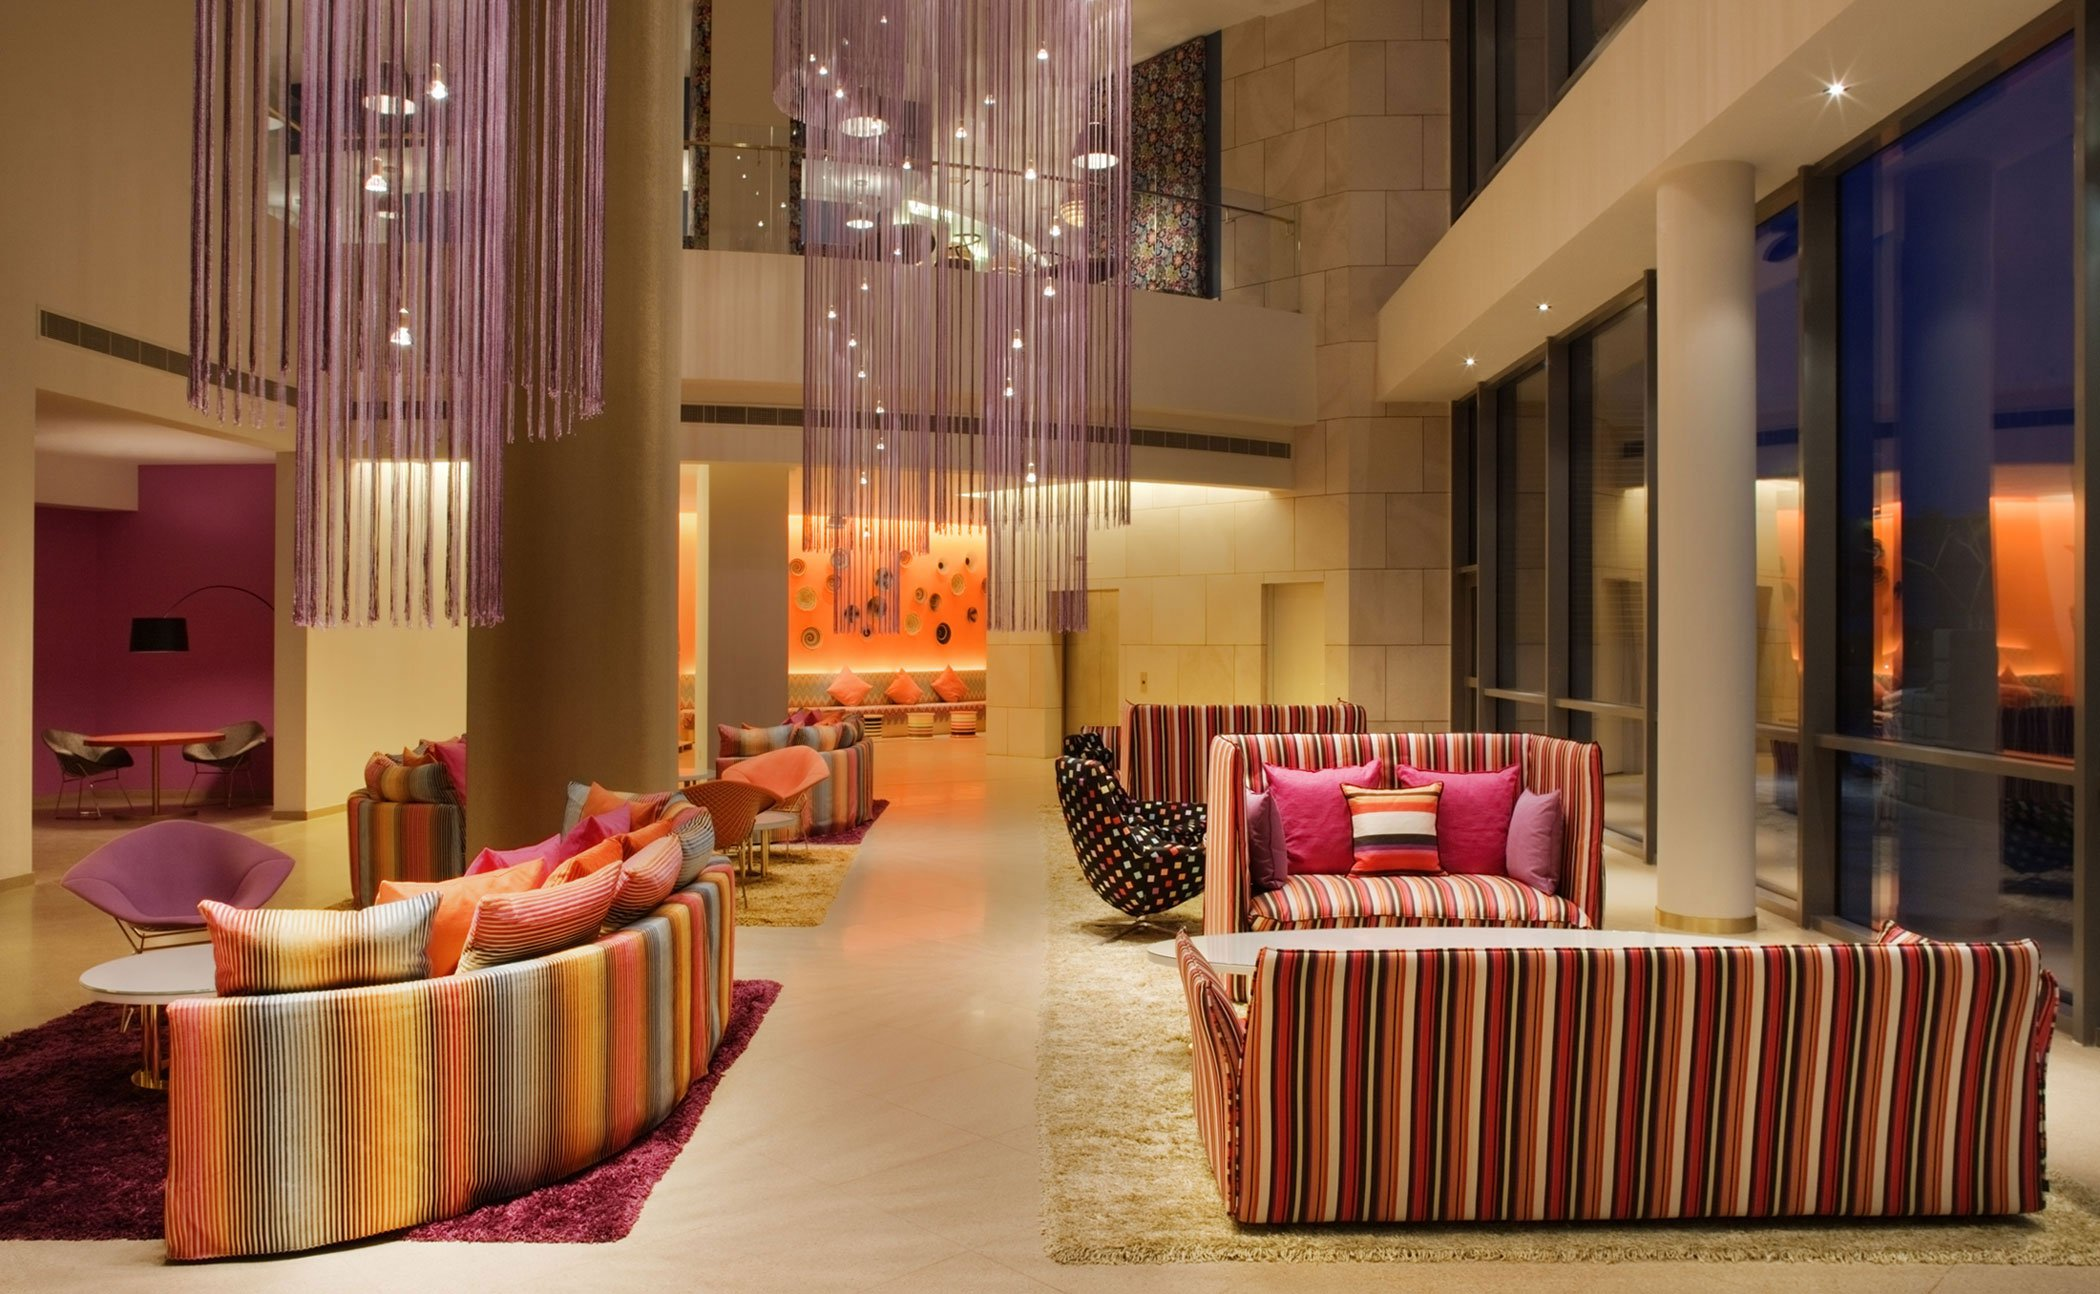 The Contemporary Hotel Missoni in Kuwait City